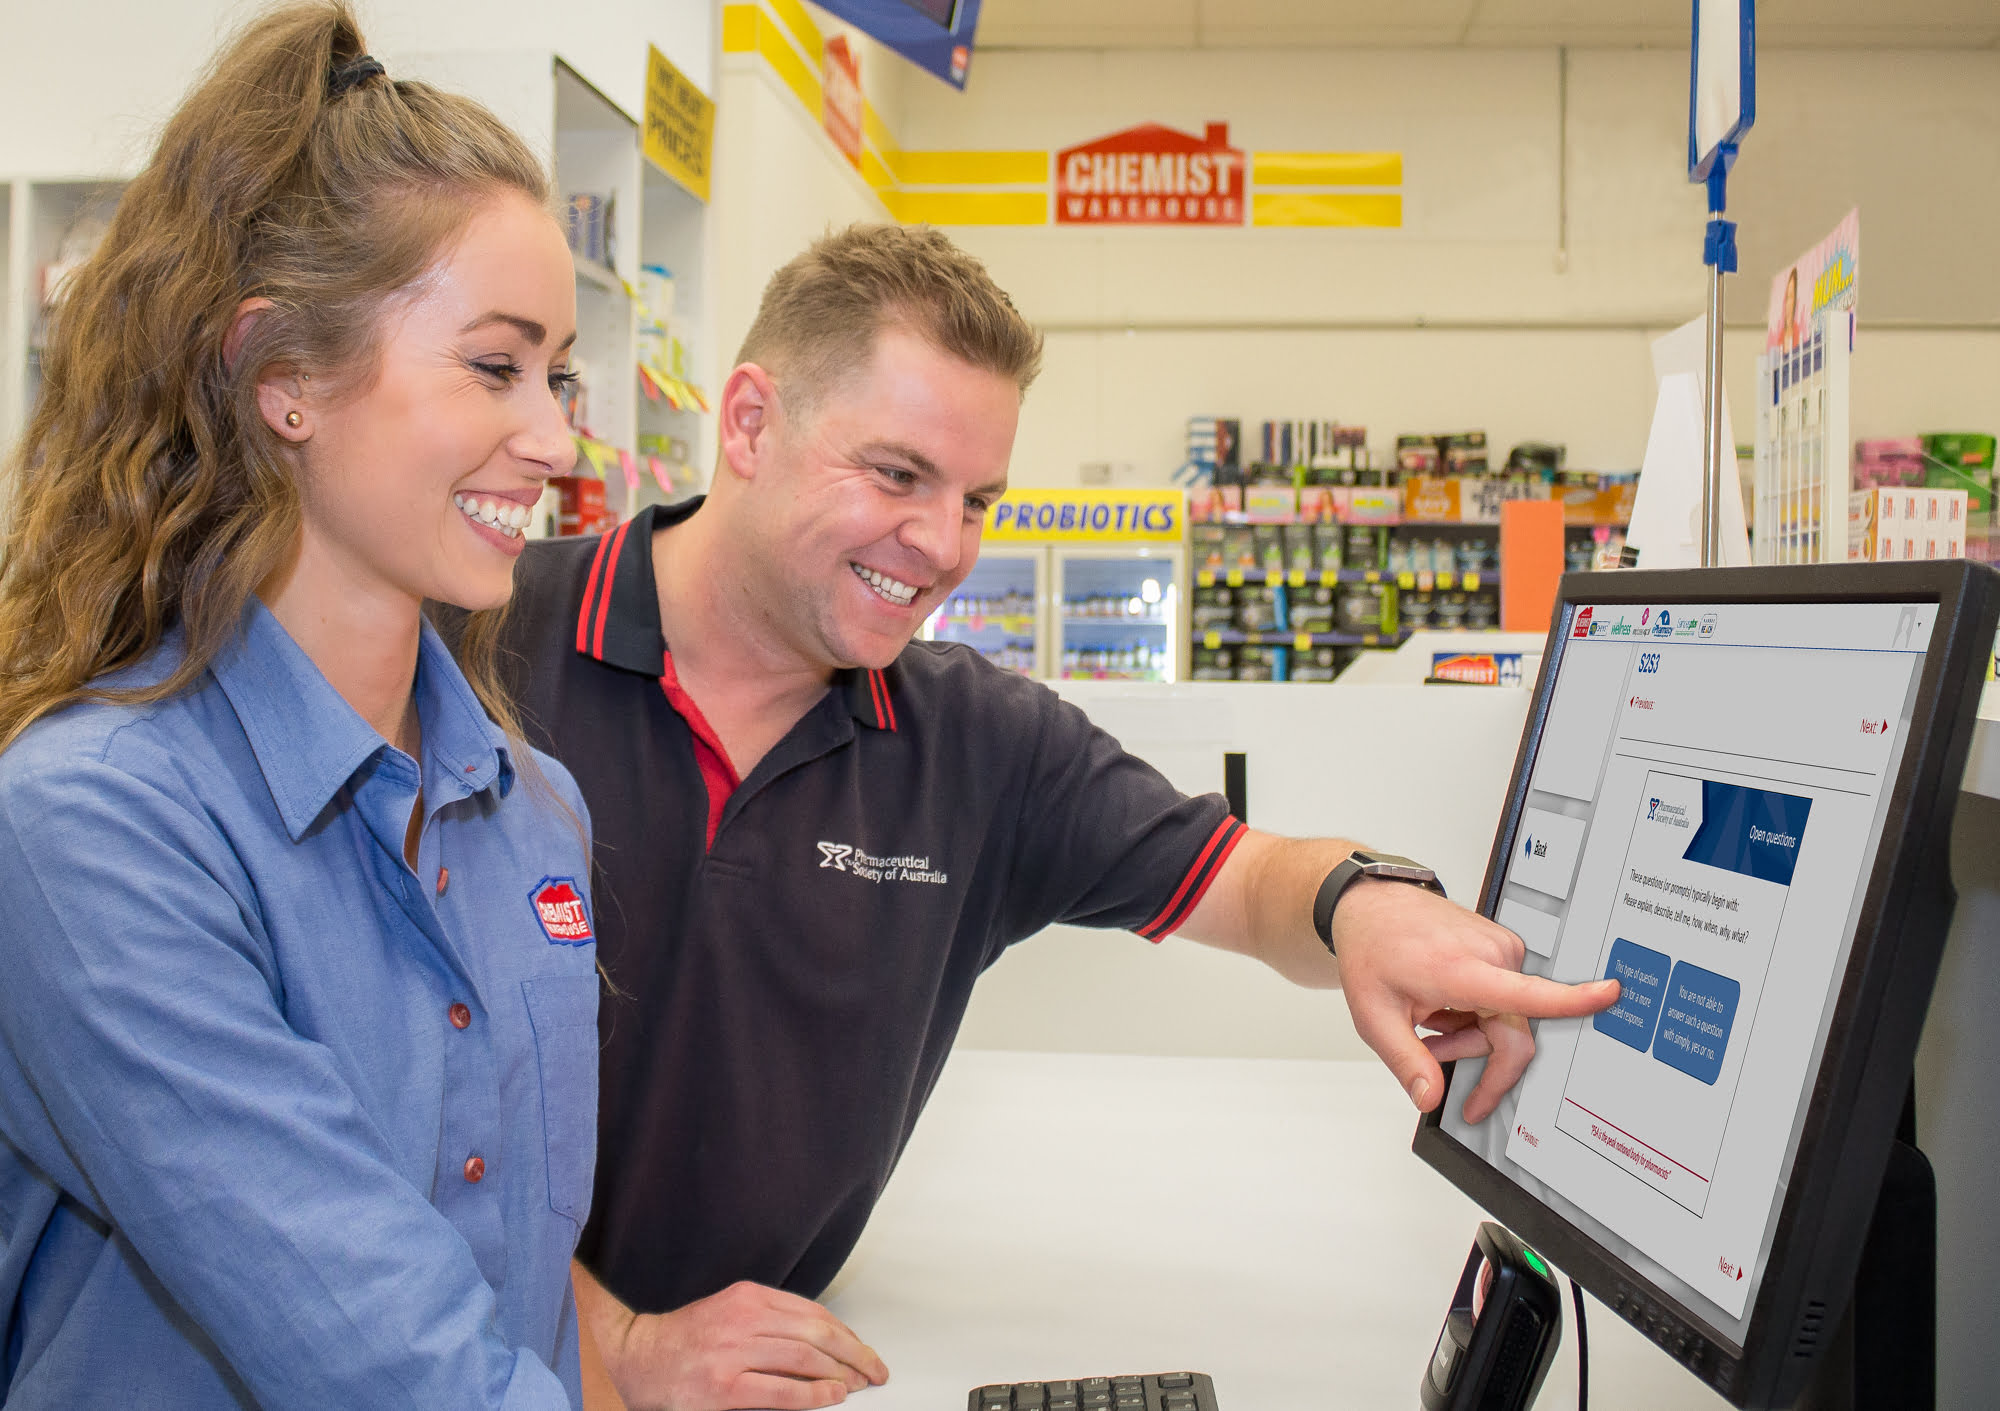 Chemist Warehouse employee Laura and PSA trainer Ryan discuss the new online training platform.